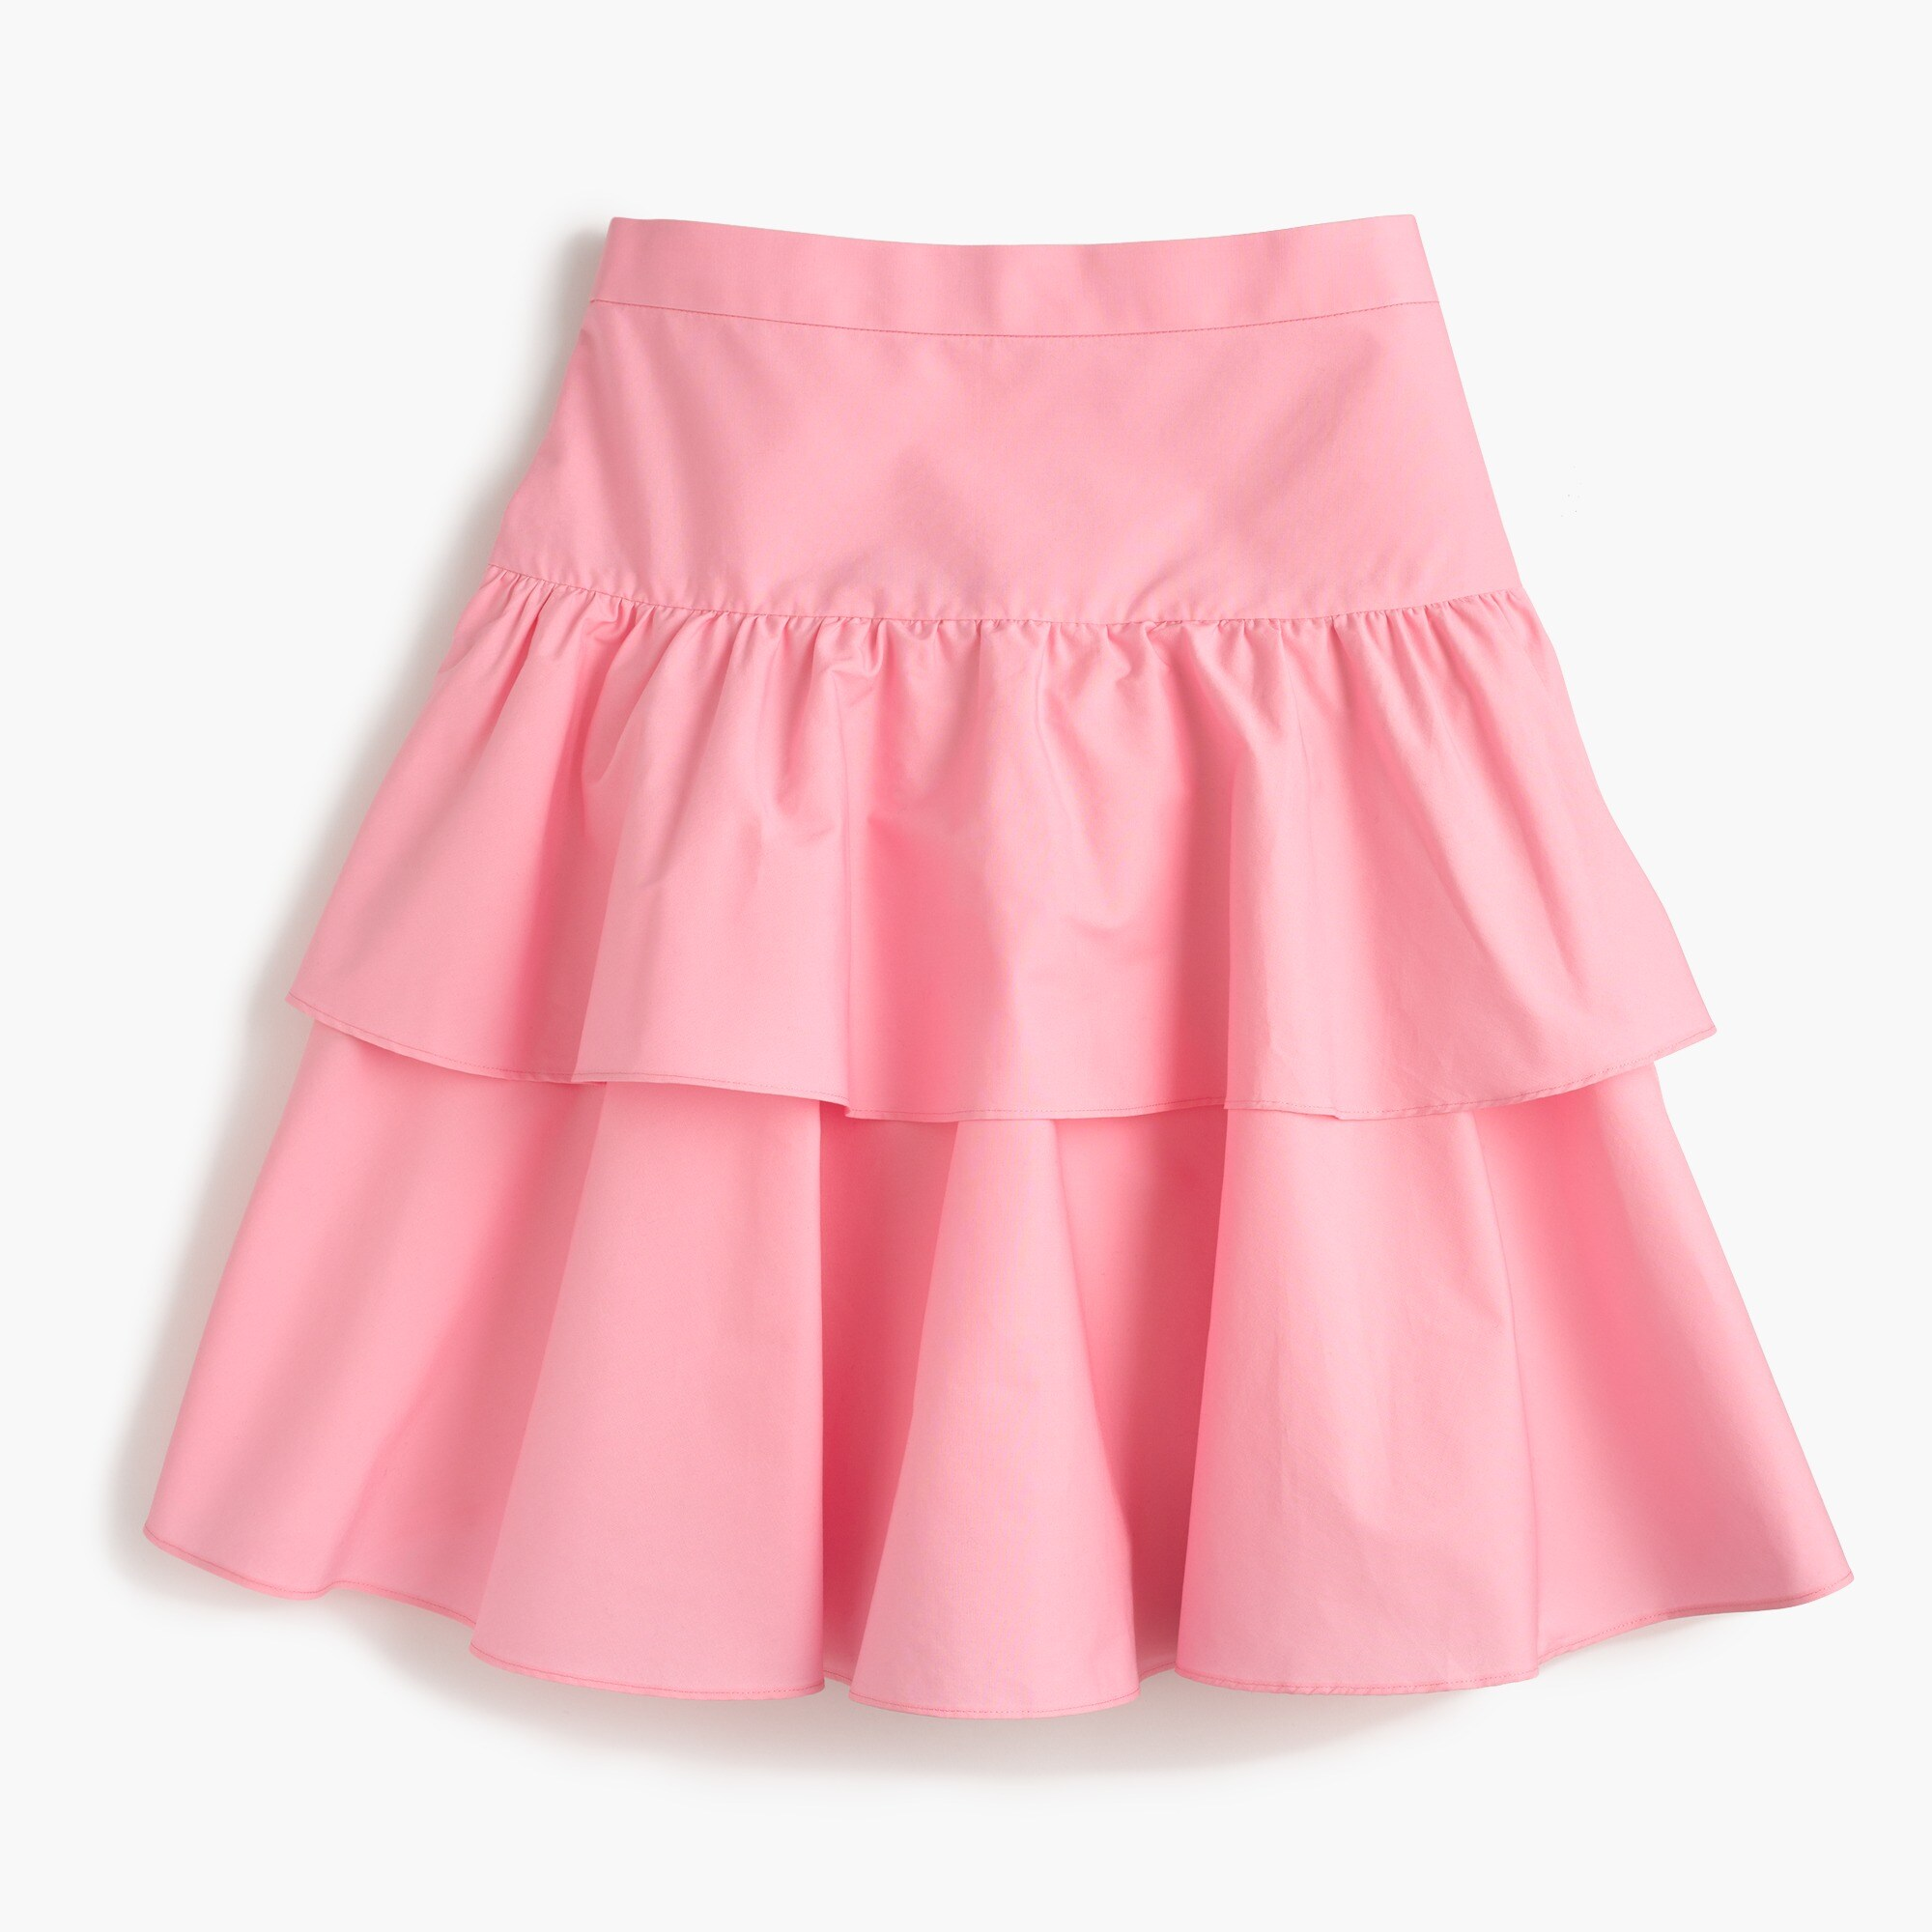 Image 1 for Petite tiered ruffle skirt